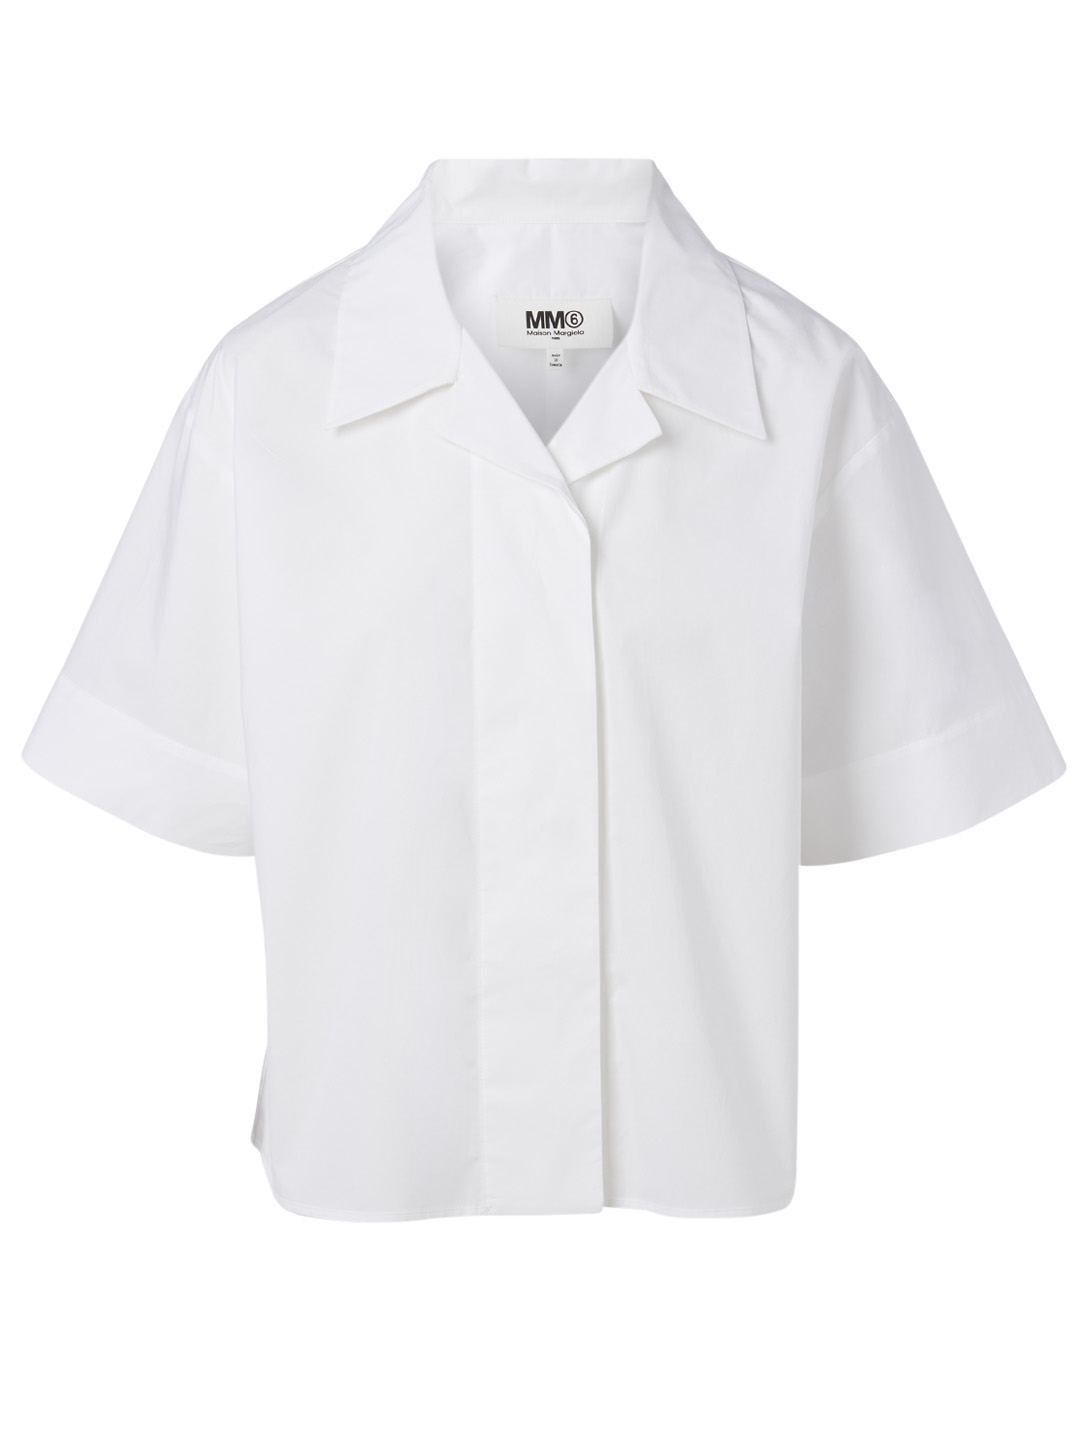 MM6 MAISON MARGIELA Cotton Boxy Shirt Women's White